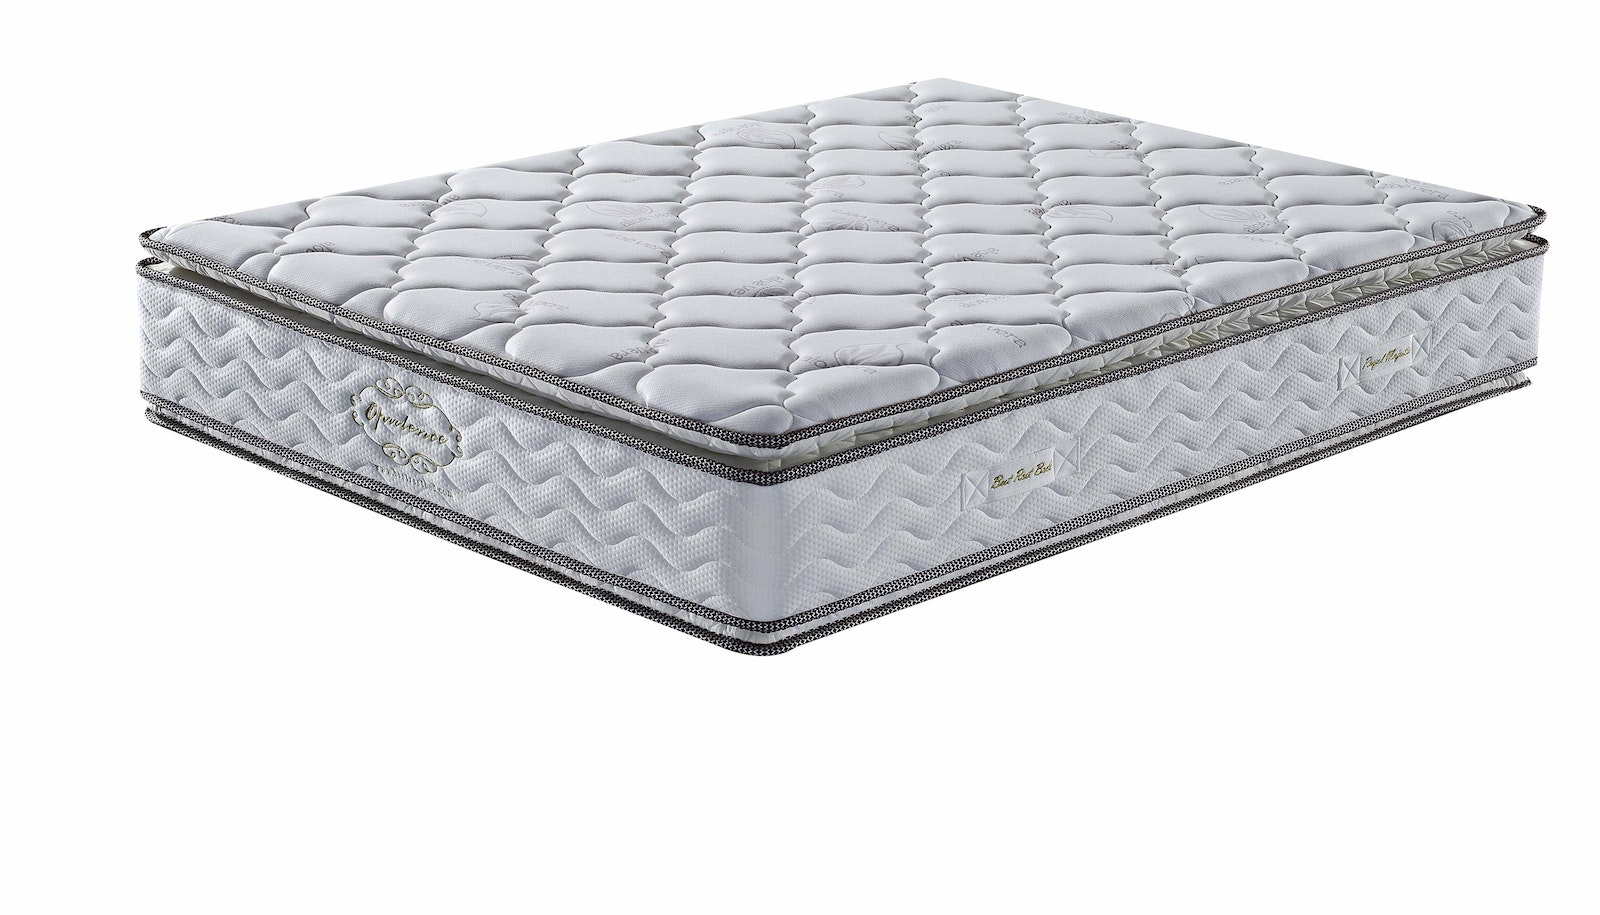 Queen mattress for sale townsville queen size mattress sale unique pics of queen size mattress Mattress set sale queen